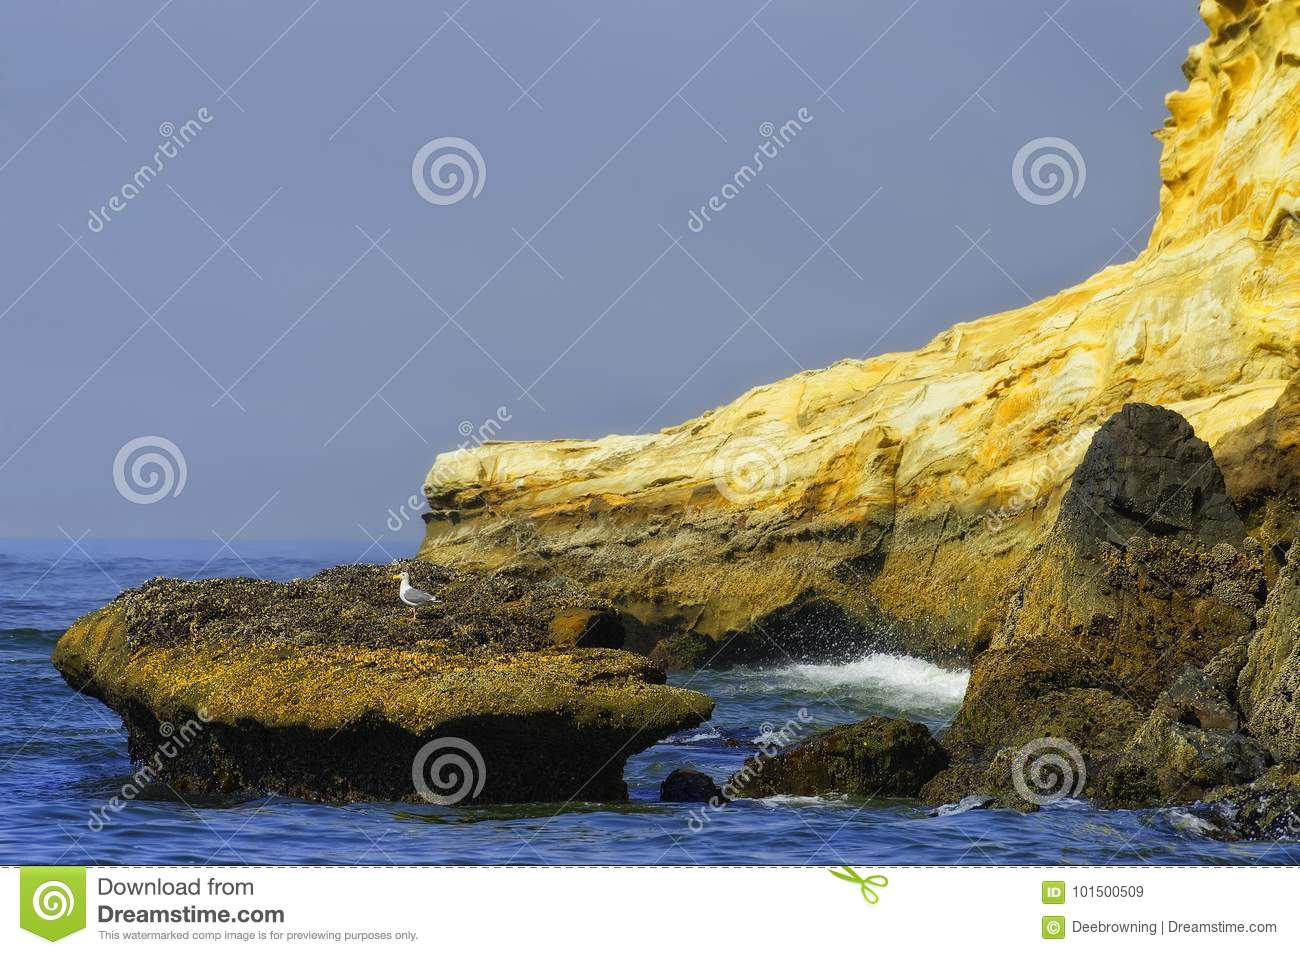 Lone Seagull perches on a rock surrounded by seawater